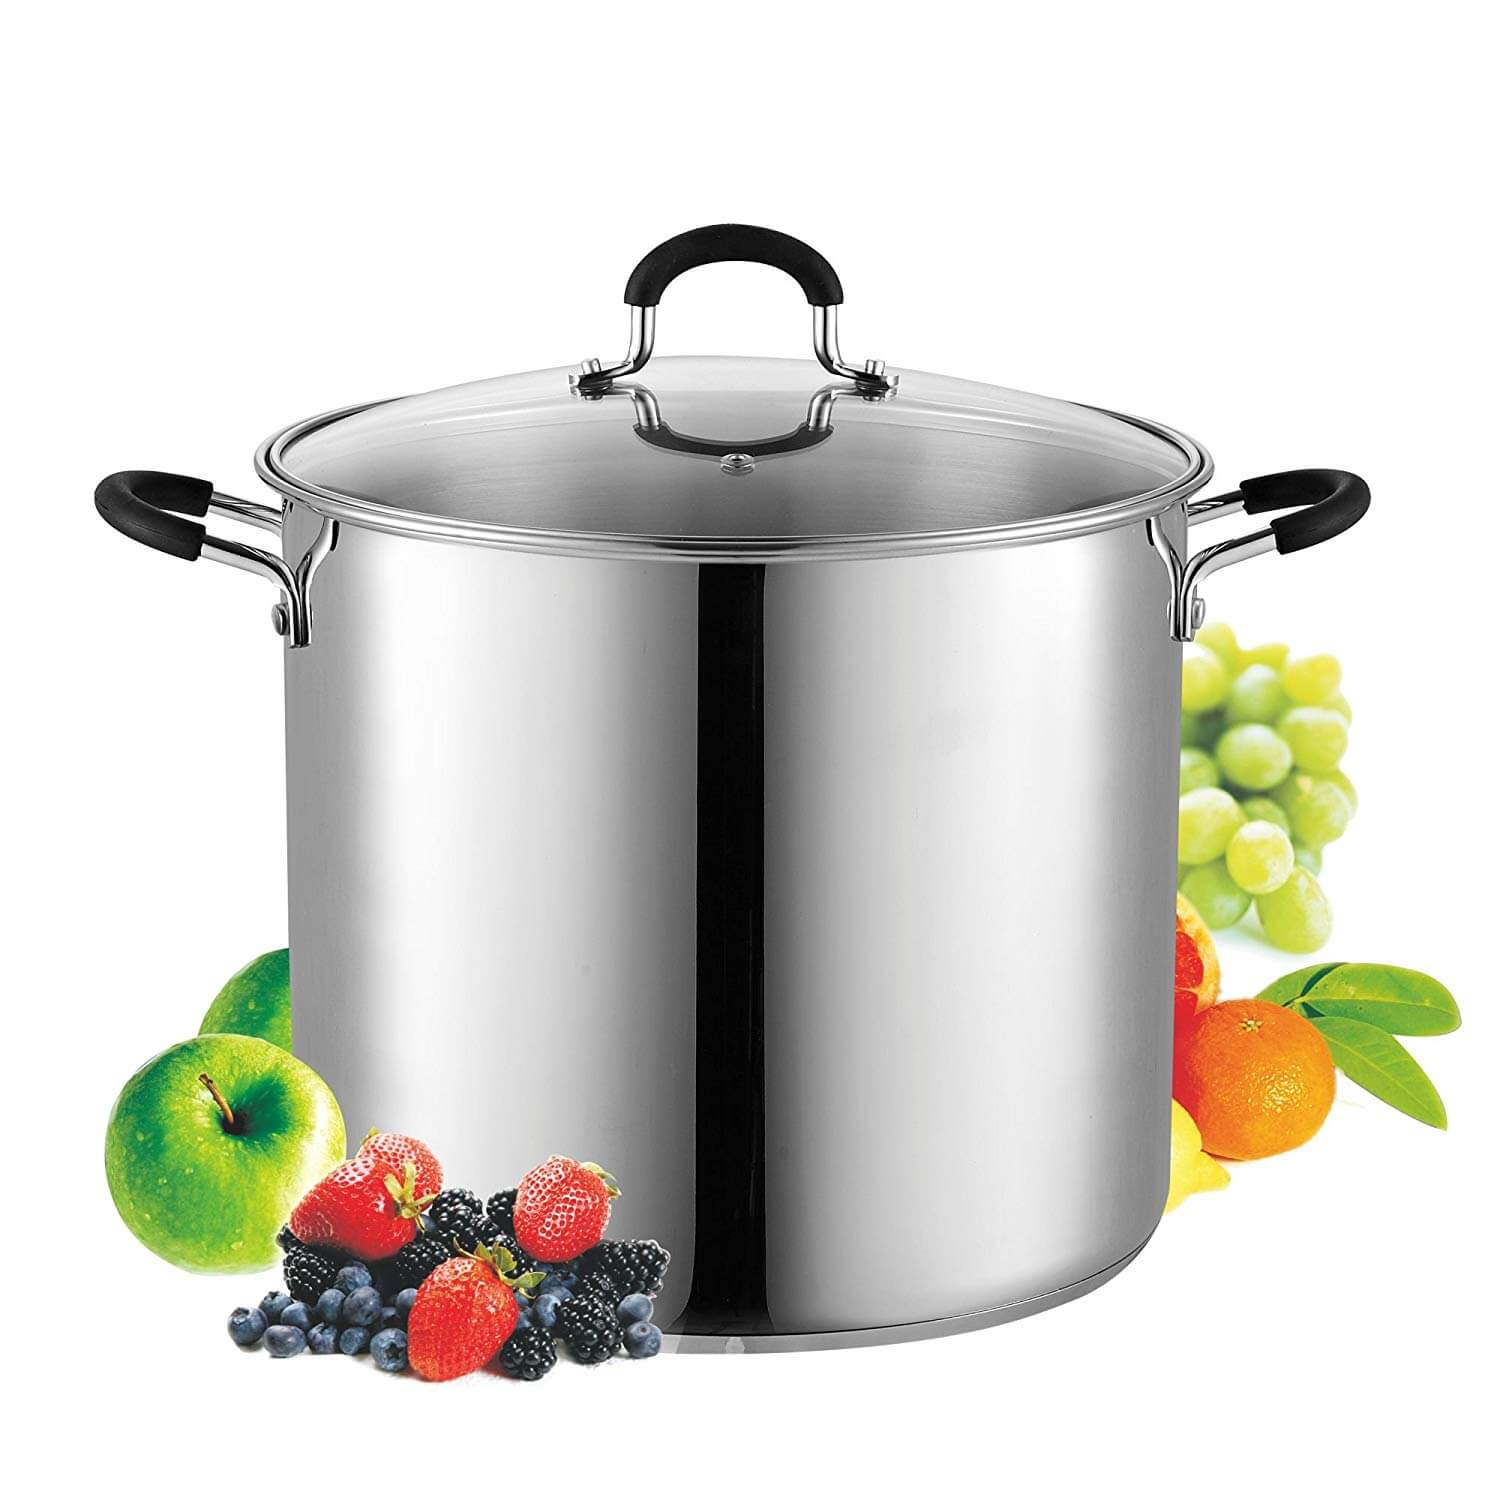 Cook N Home 12 Quart Stainless Steel Stockpot